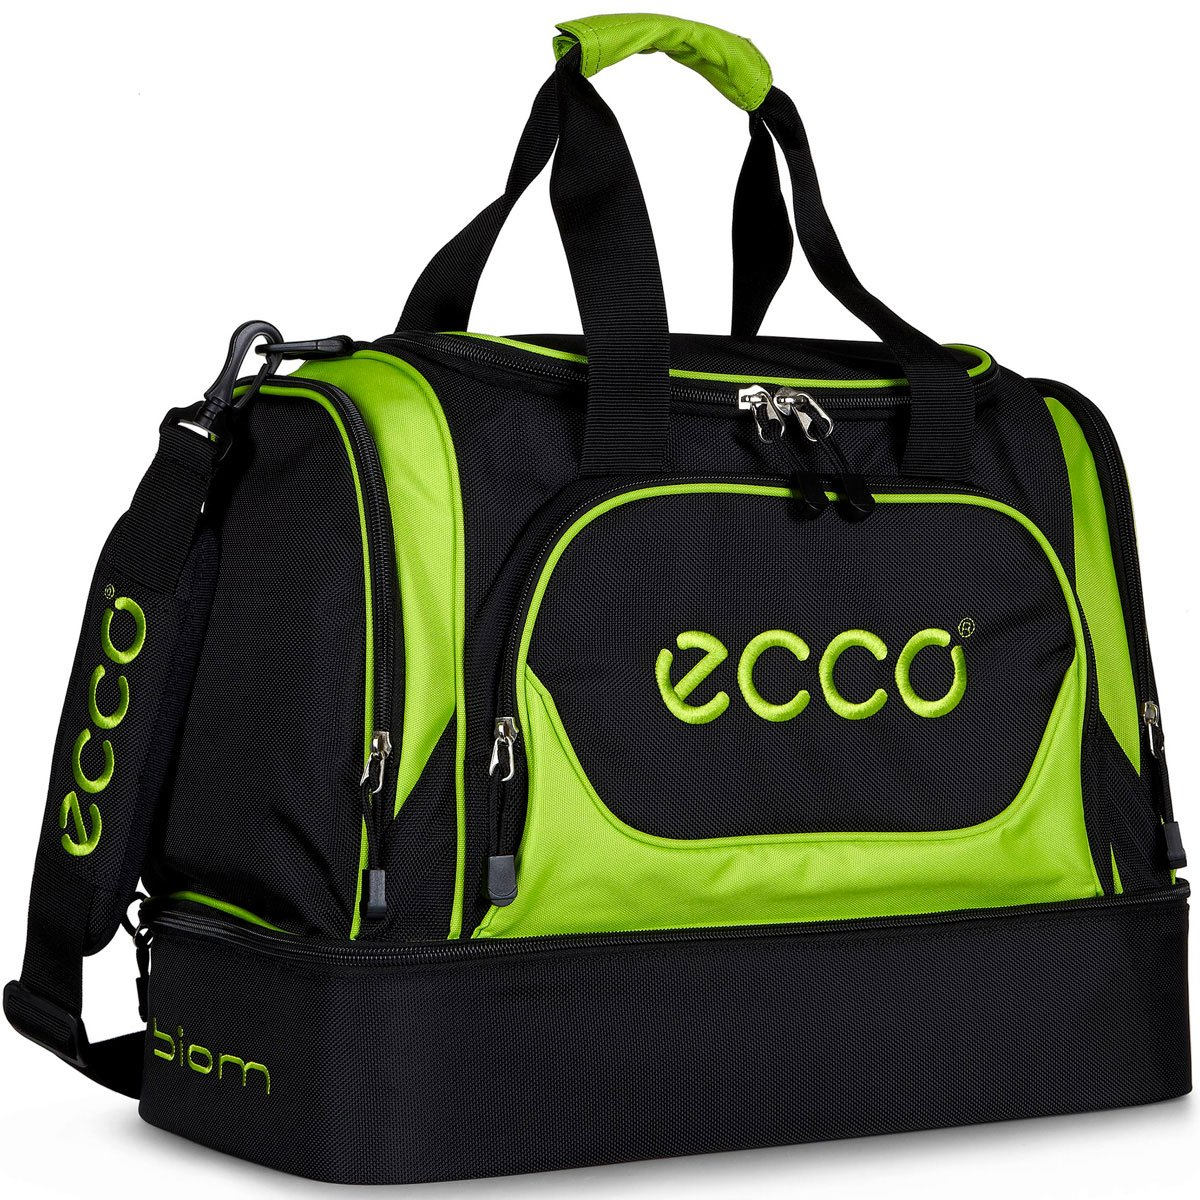 Image result for ecco carry duffle bag